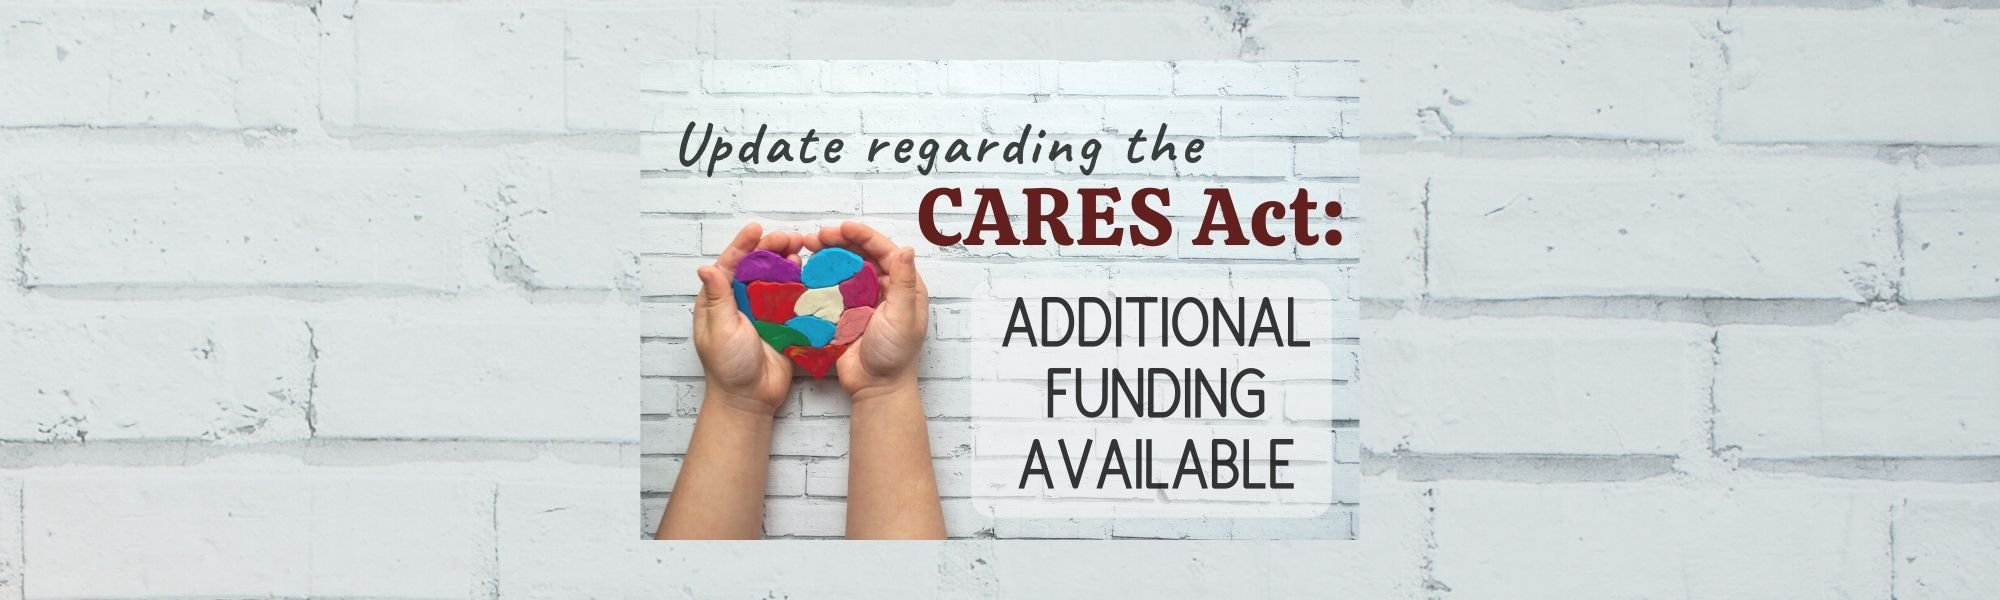 CARES Act Update: Additional Funding Available